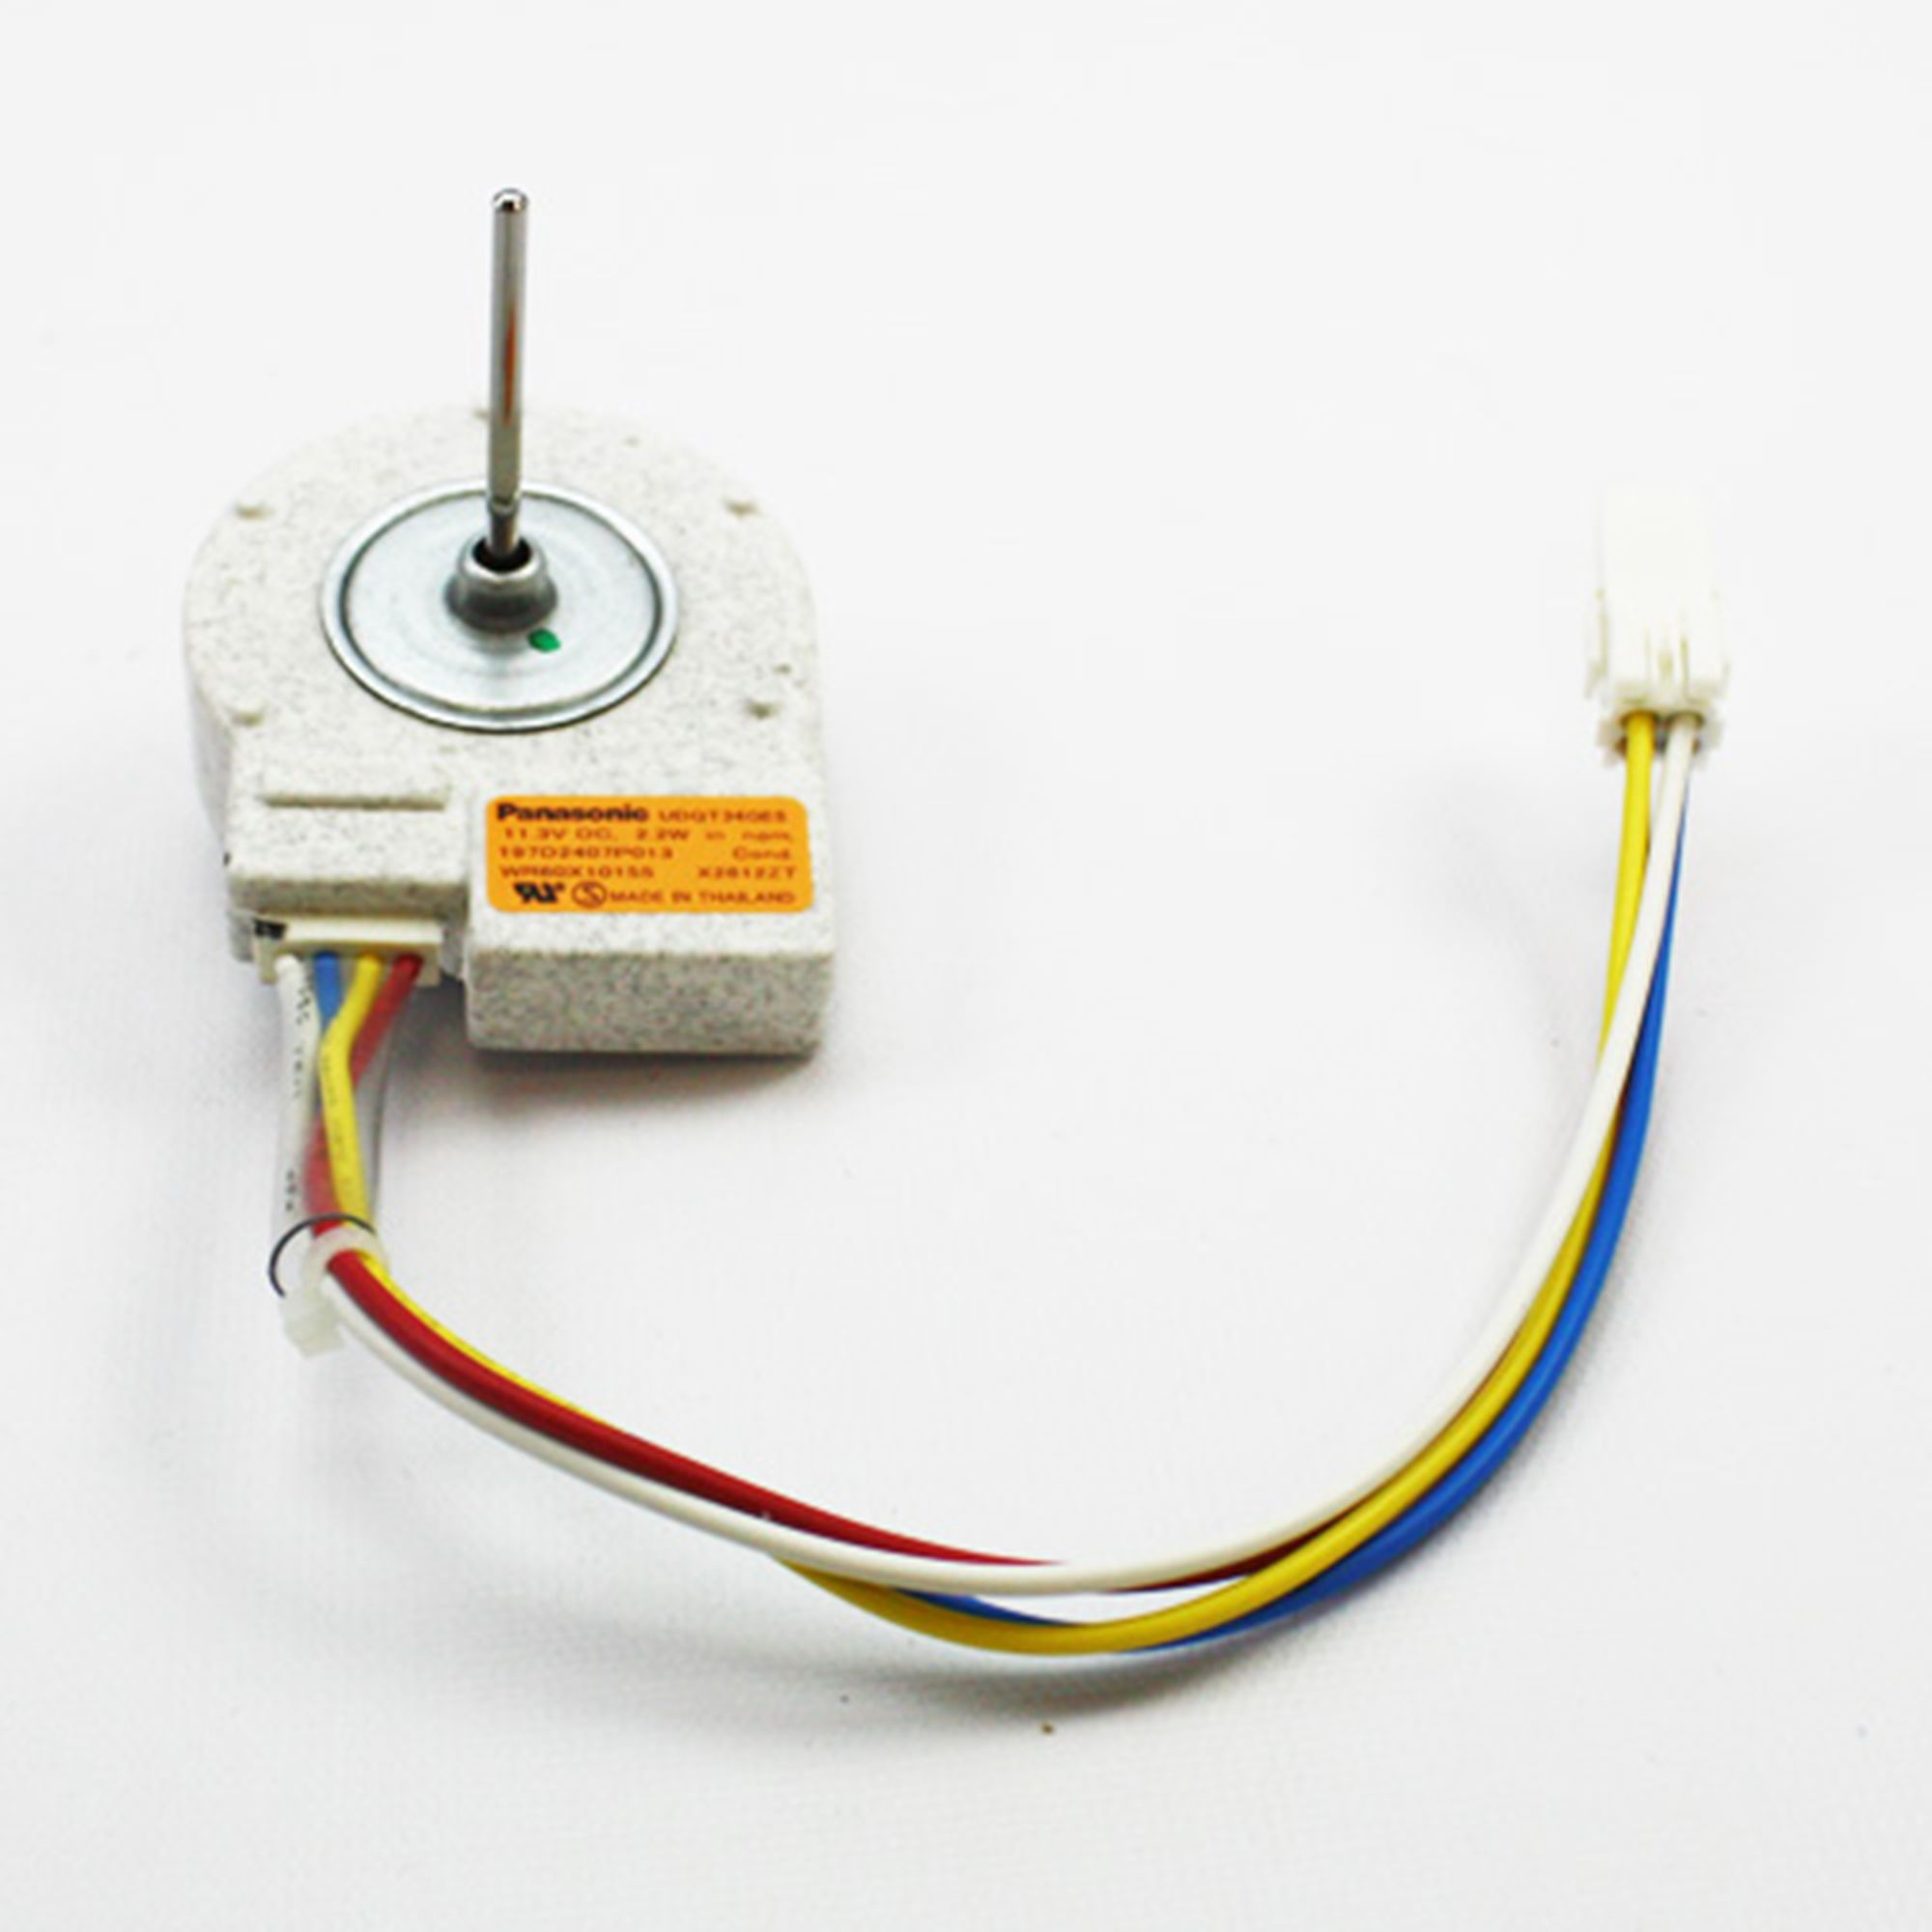 Genuine oem ge refrigerator condenser fan motor wr60x10209 for Ge refrigerator condenser fan motor not working